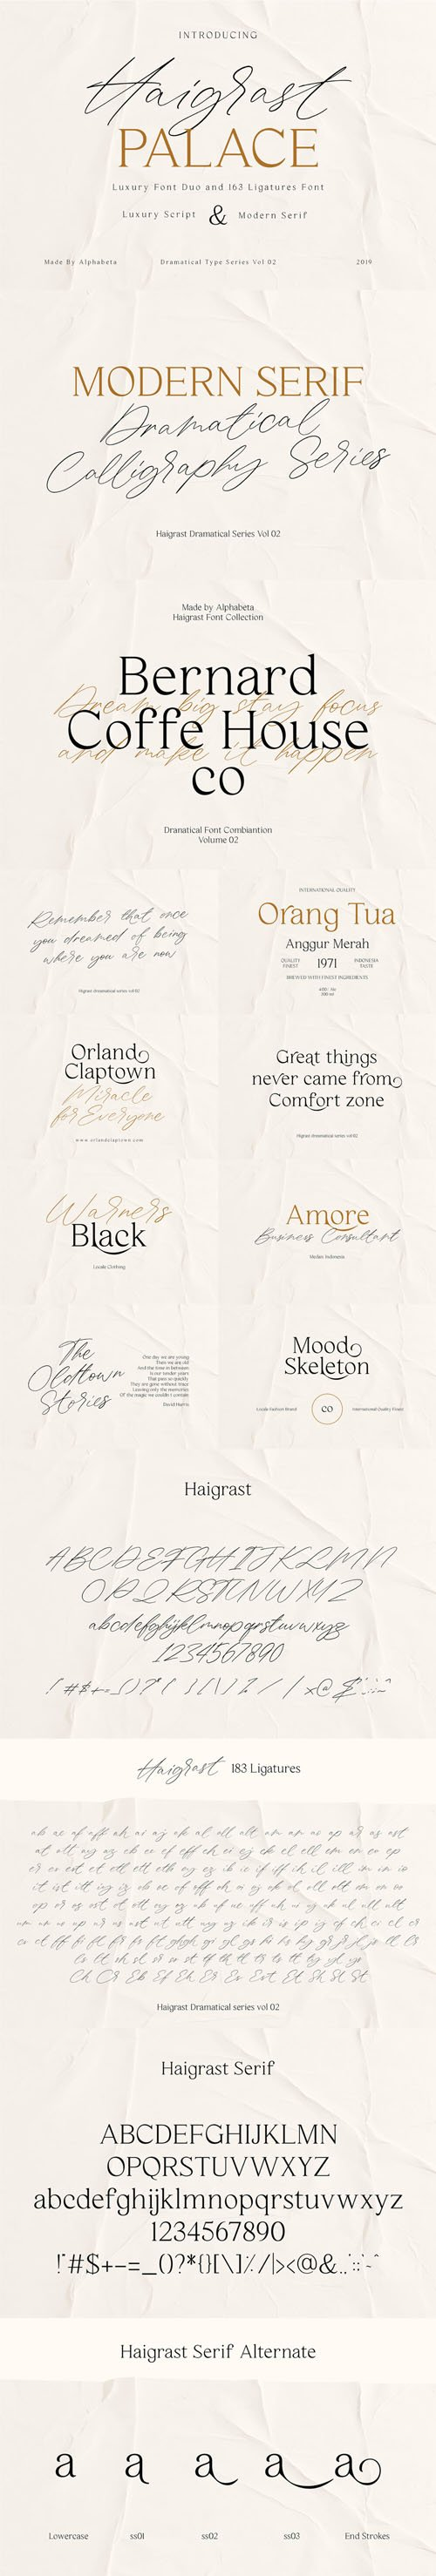 Haigrast Palace - Luxury Font Duo and 163 Ligatures Font